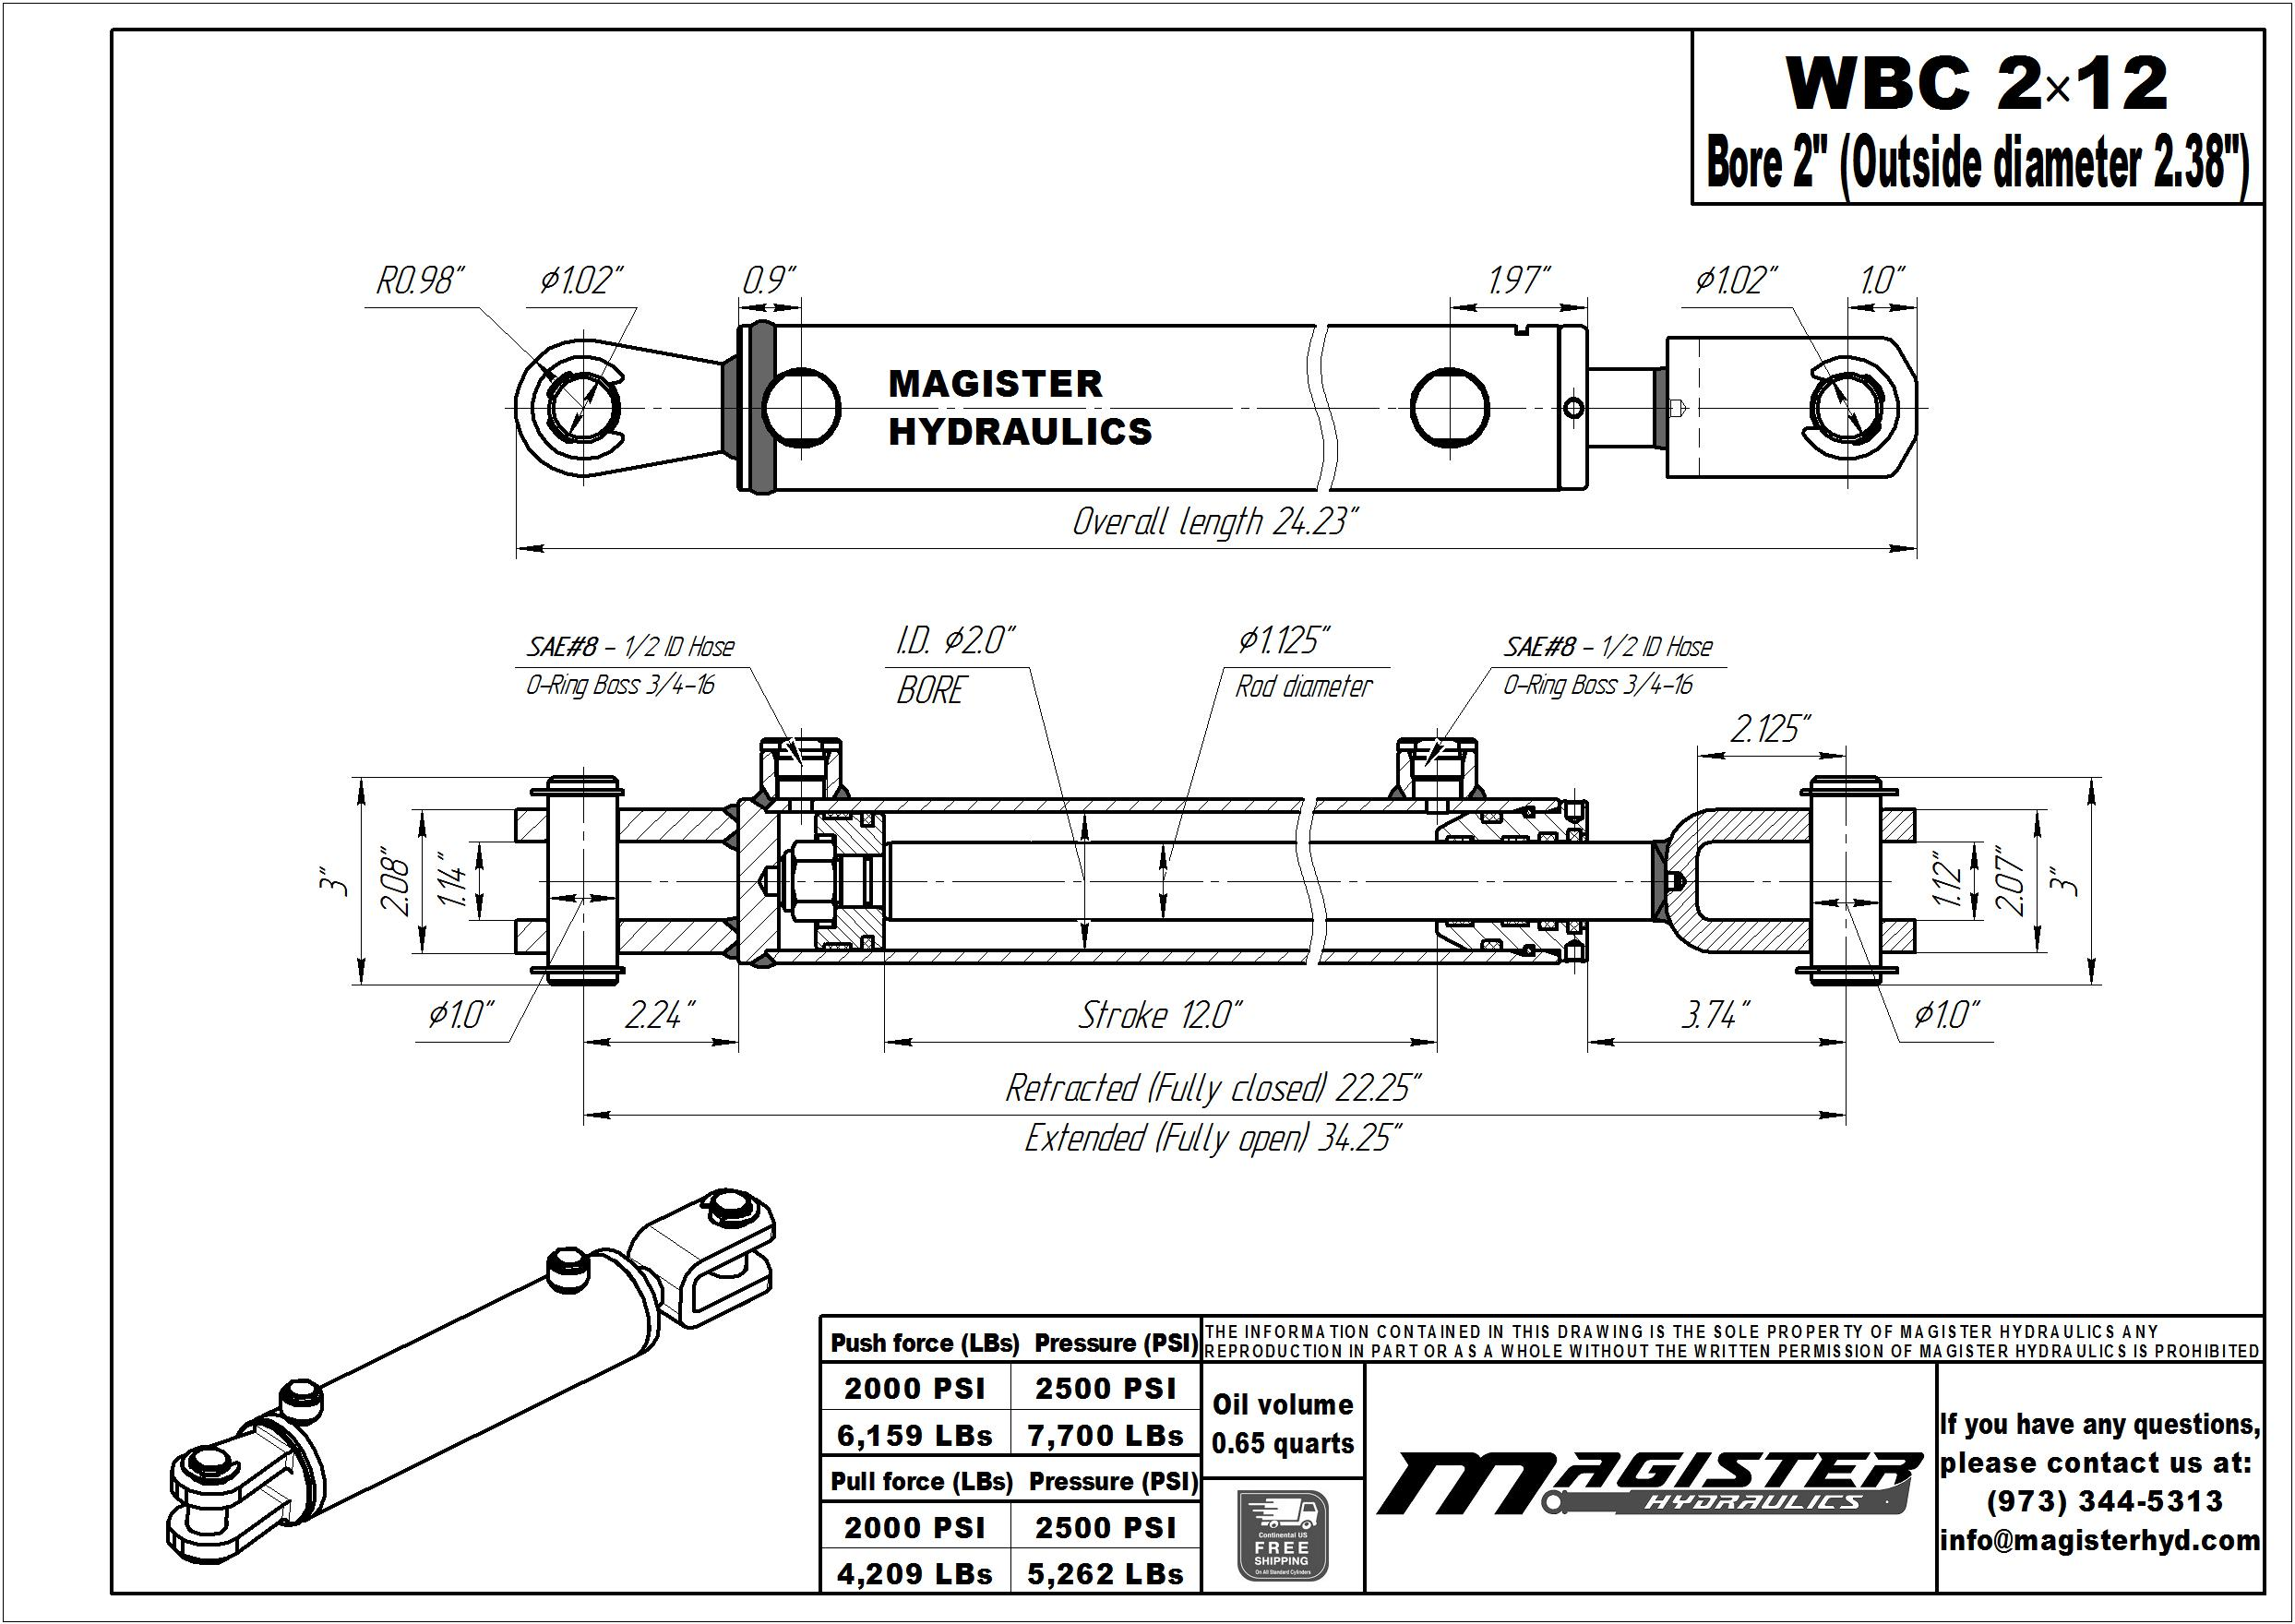 2 bore x 12 stroke hydraulic cylinder, ag clevis double acting cylinder | Magister Hydraulics